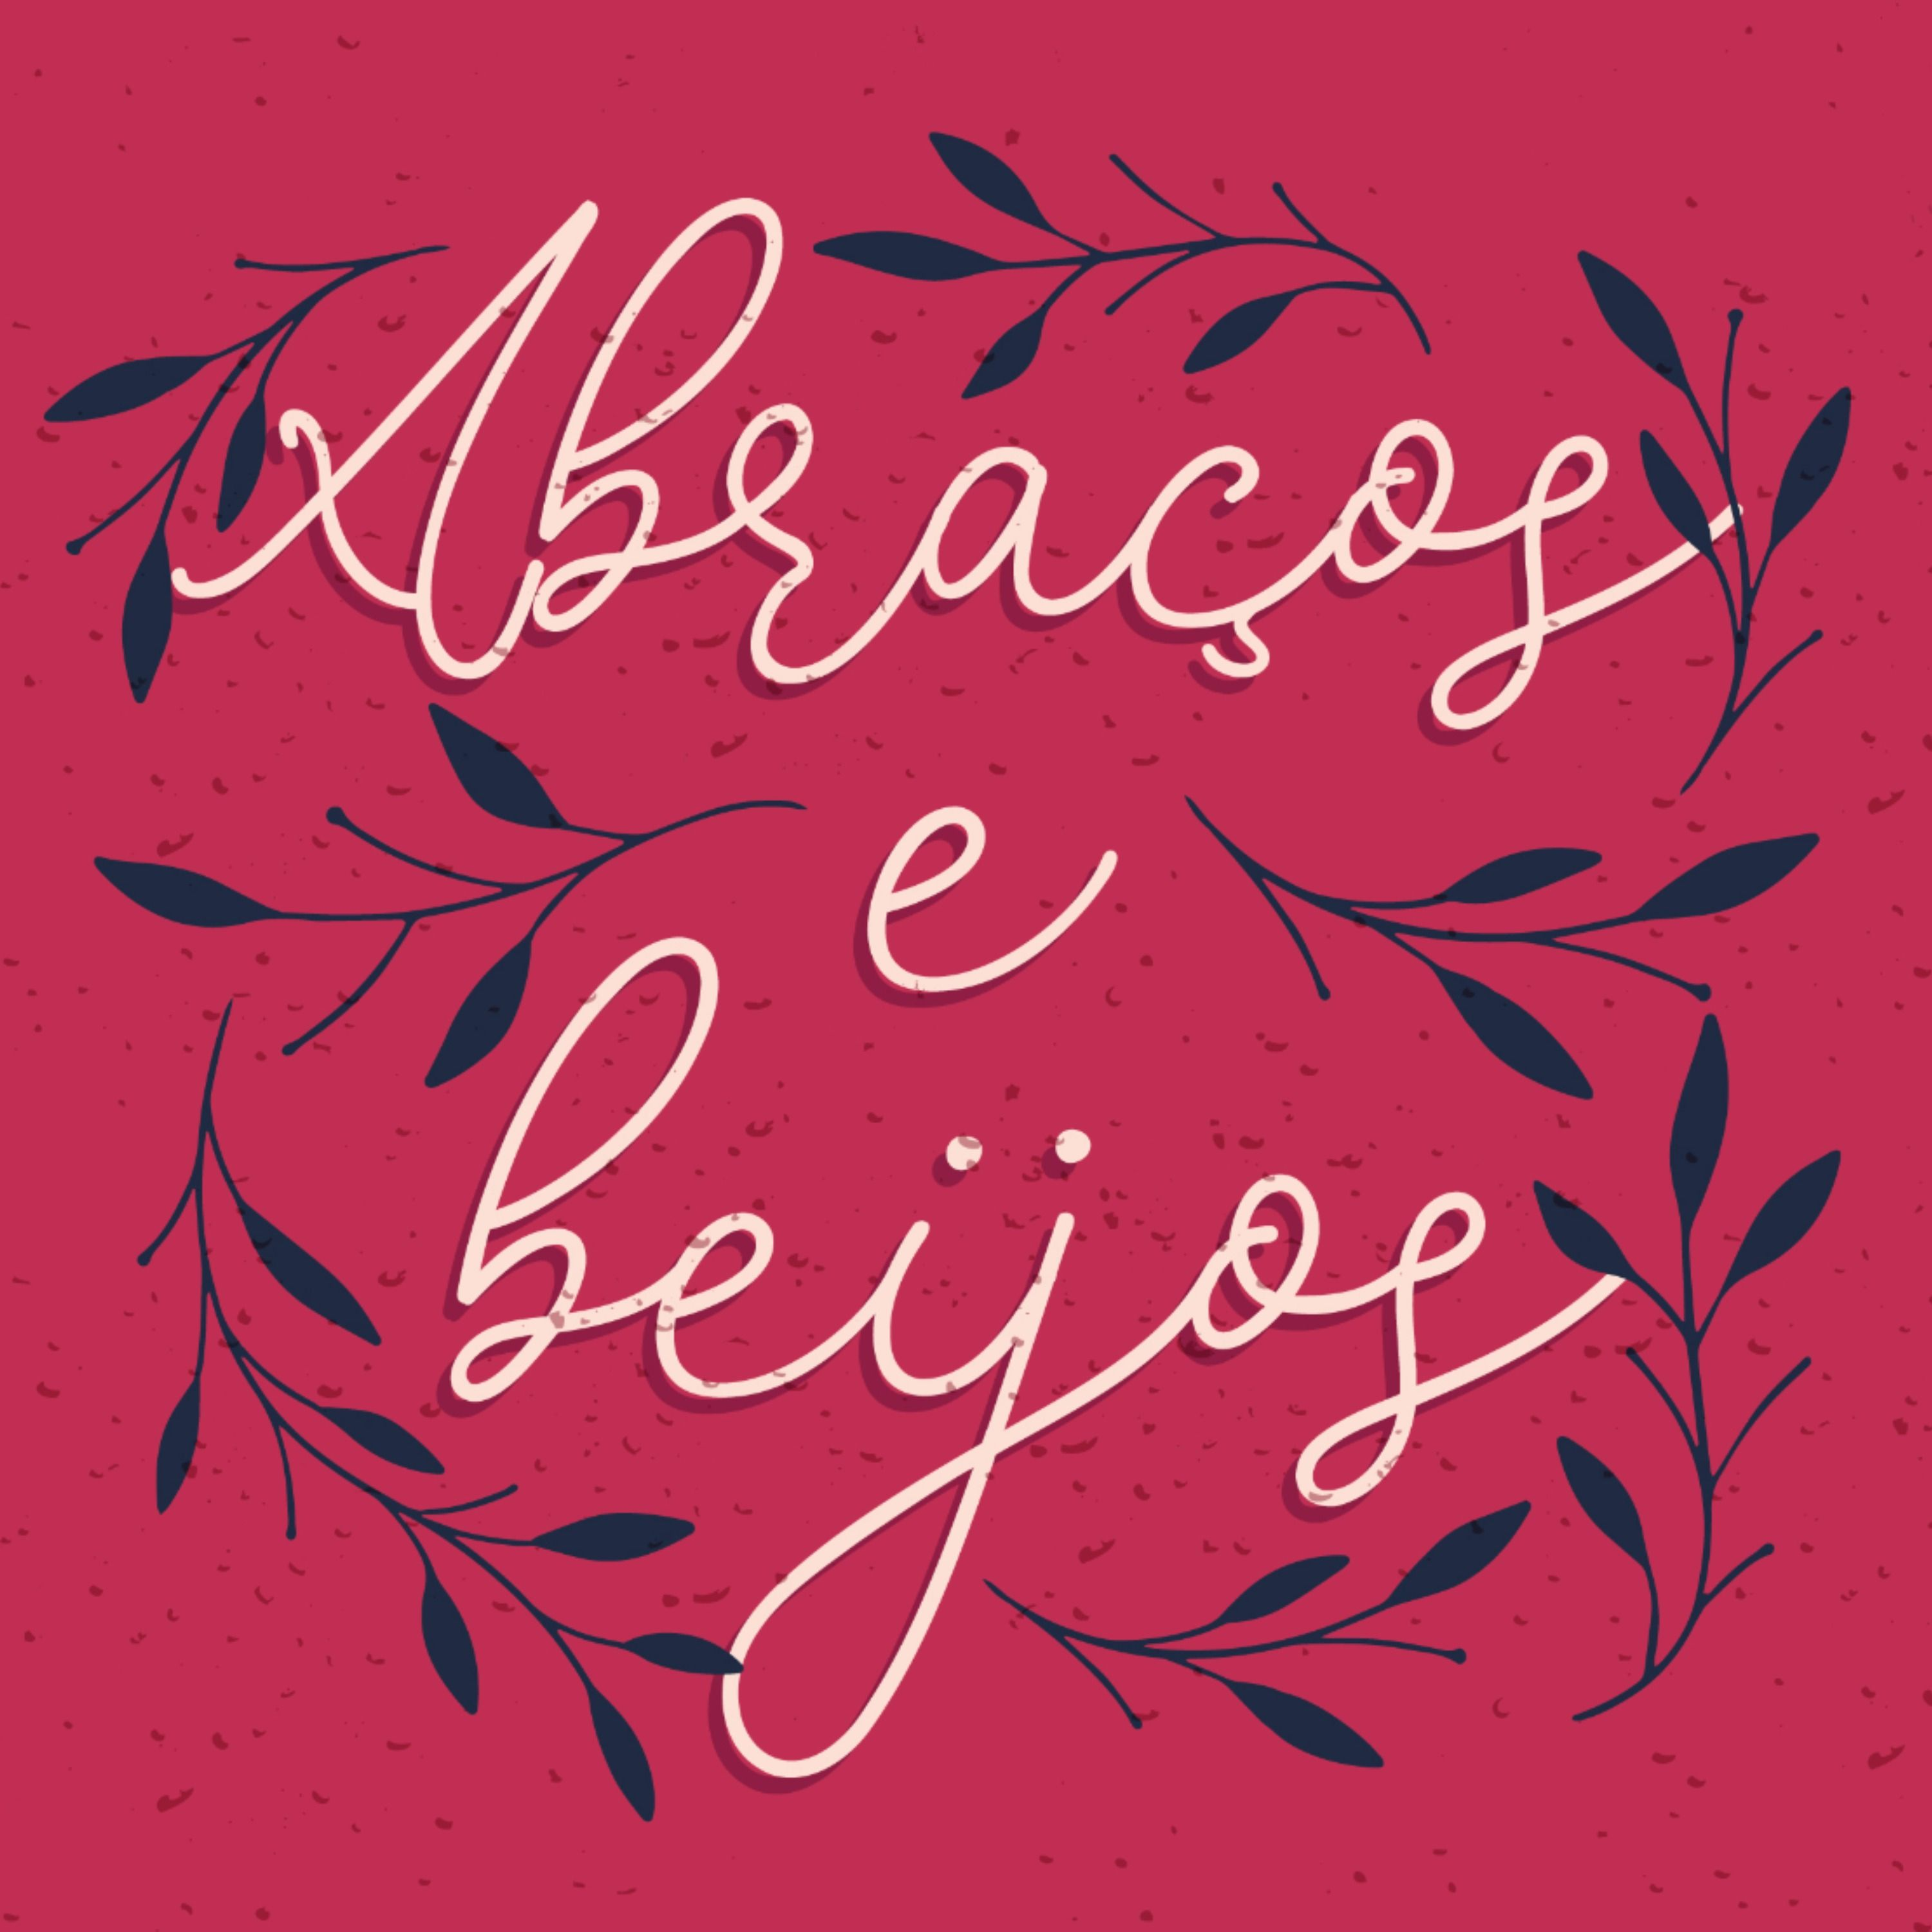 Cute seasonal lettering design featuring the quote in